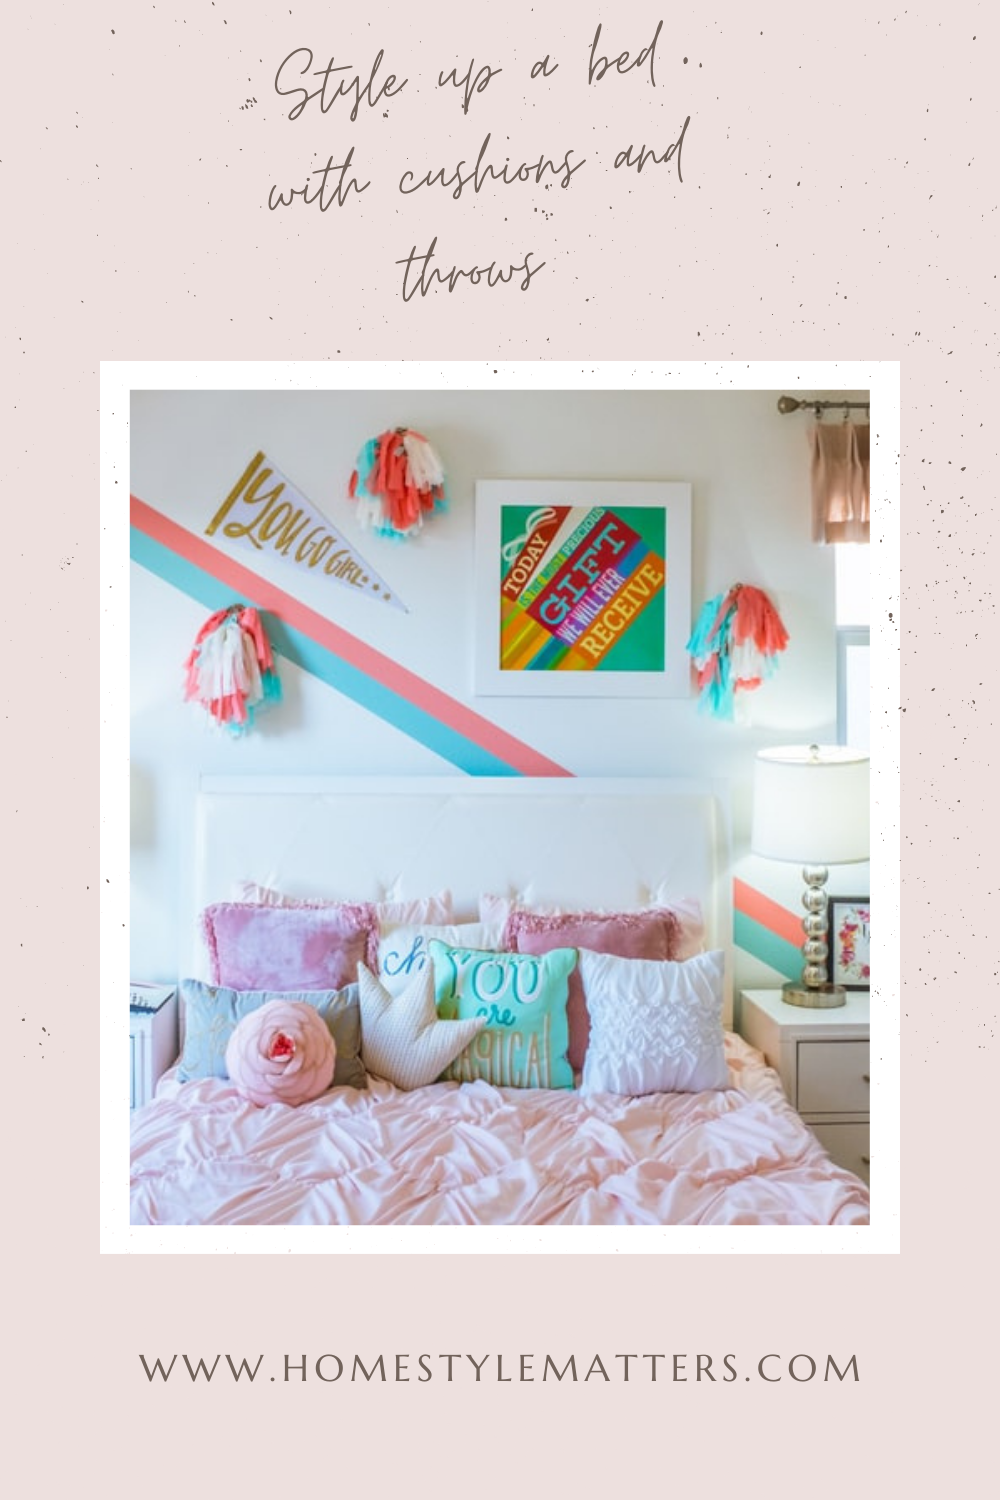 Style up a bed with cushions and throws 1